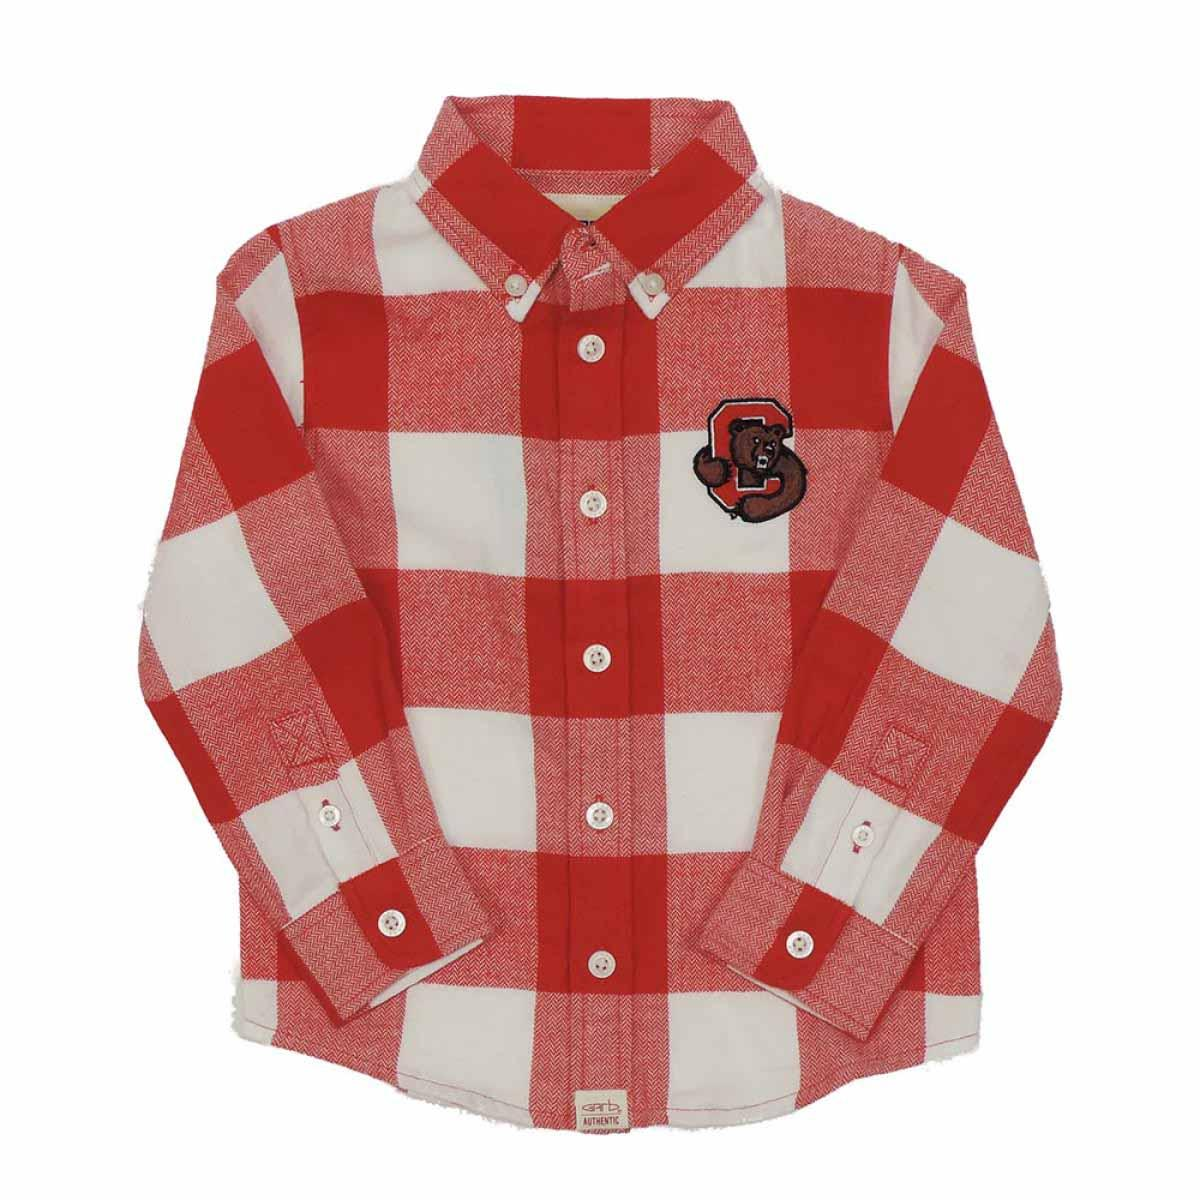 7933bb61 Infant And Toddler Check Flannel Shirt - Red And White